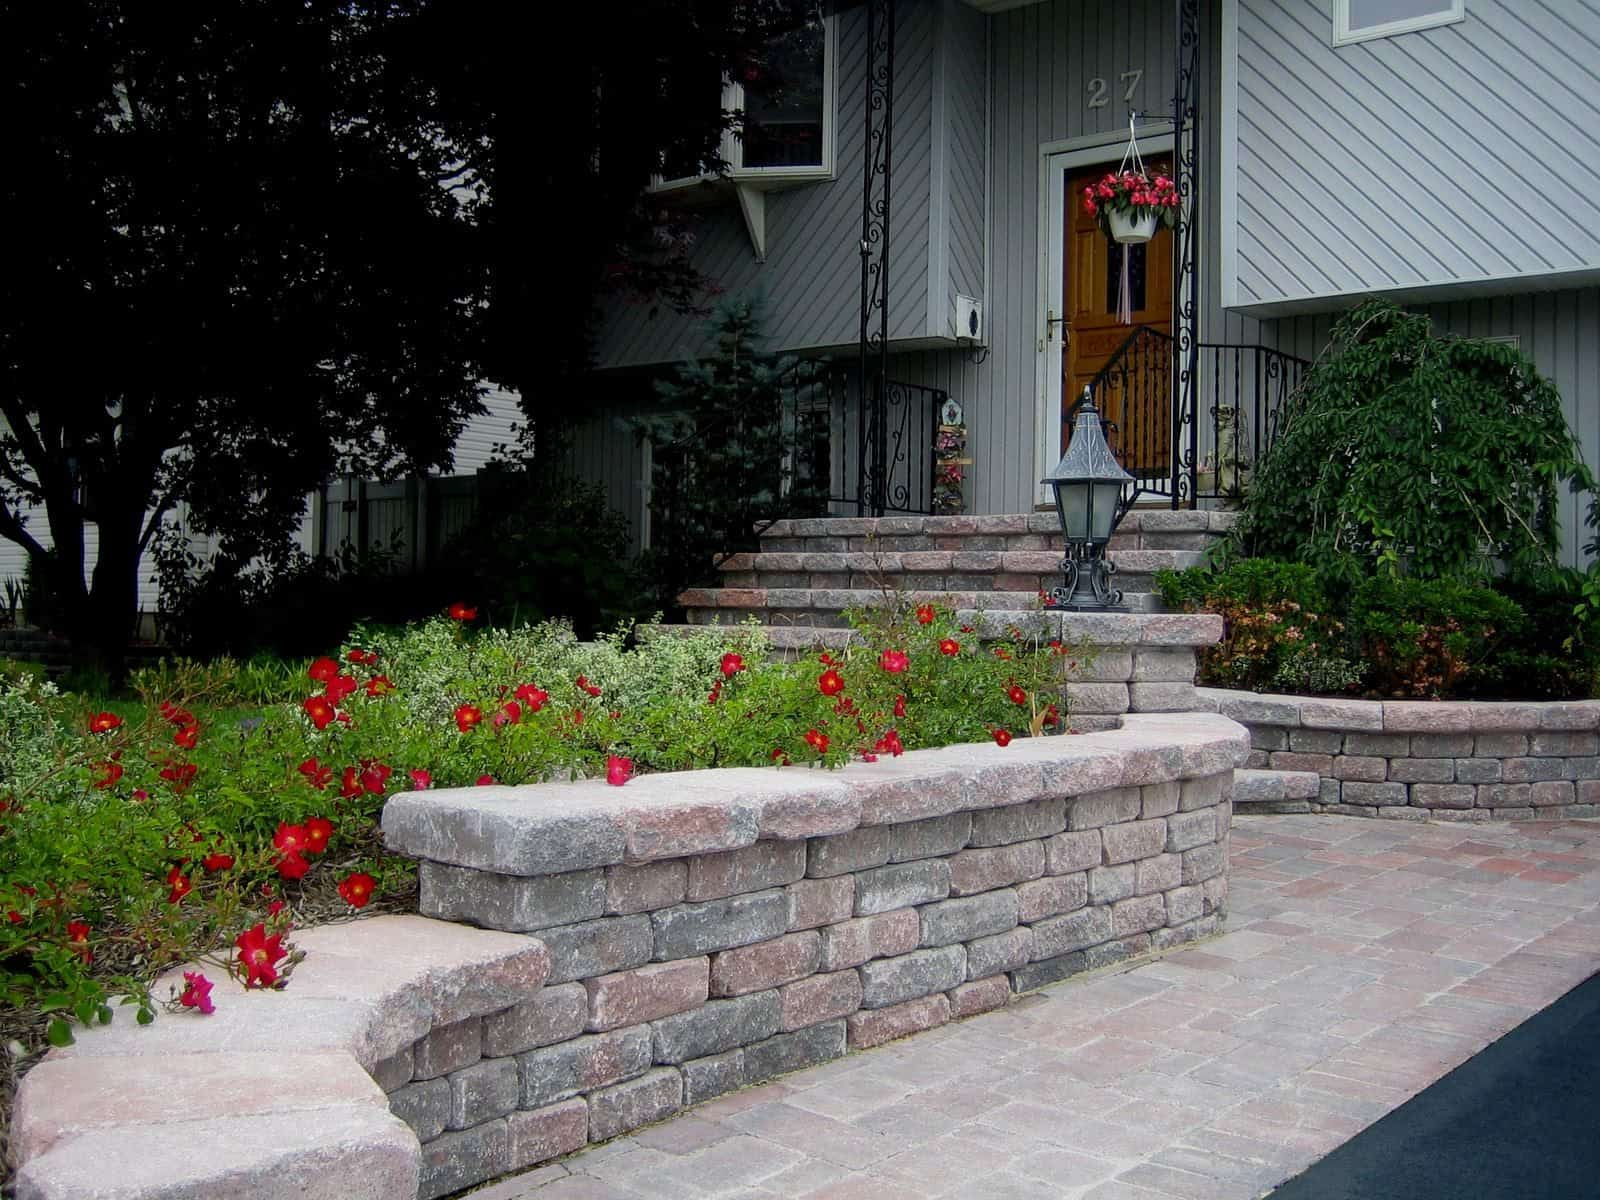 Retaining Wall with Rio Wall Stone - Color - Ruby Onyx - Lindenhurst, Long Island NY